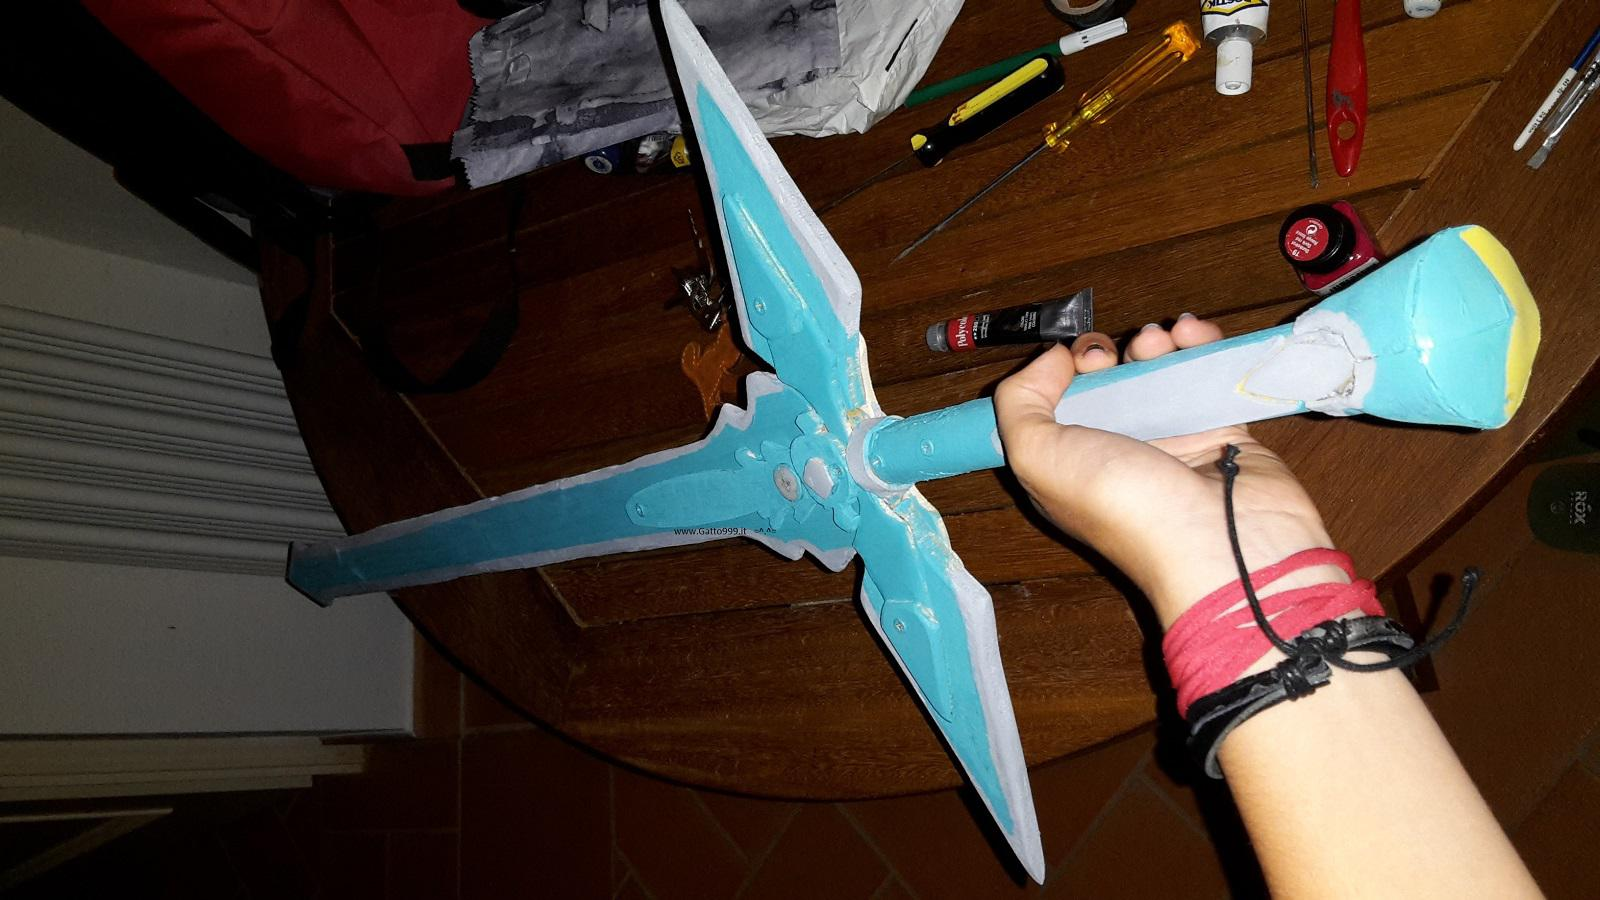 Dark Repulser Sword come fare - howto - tutorial - istruzioni - instructions